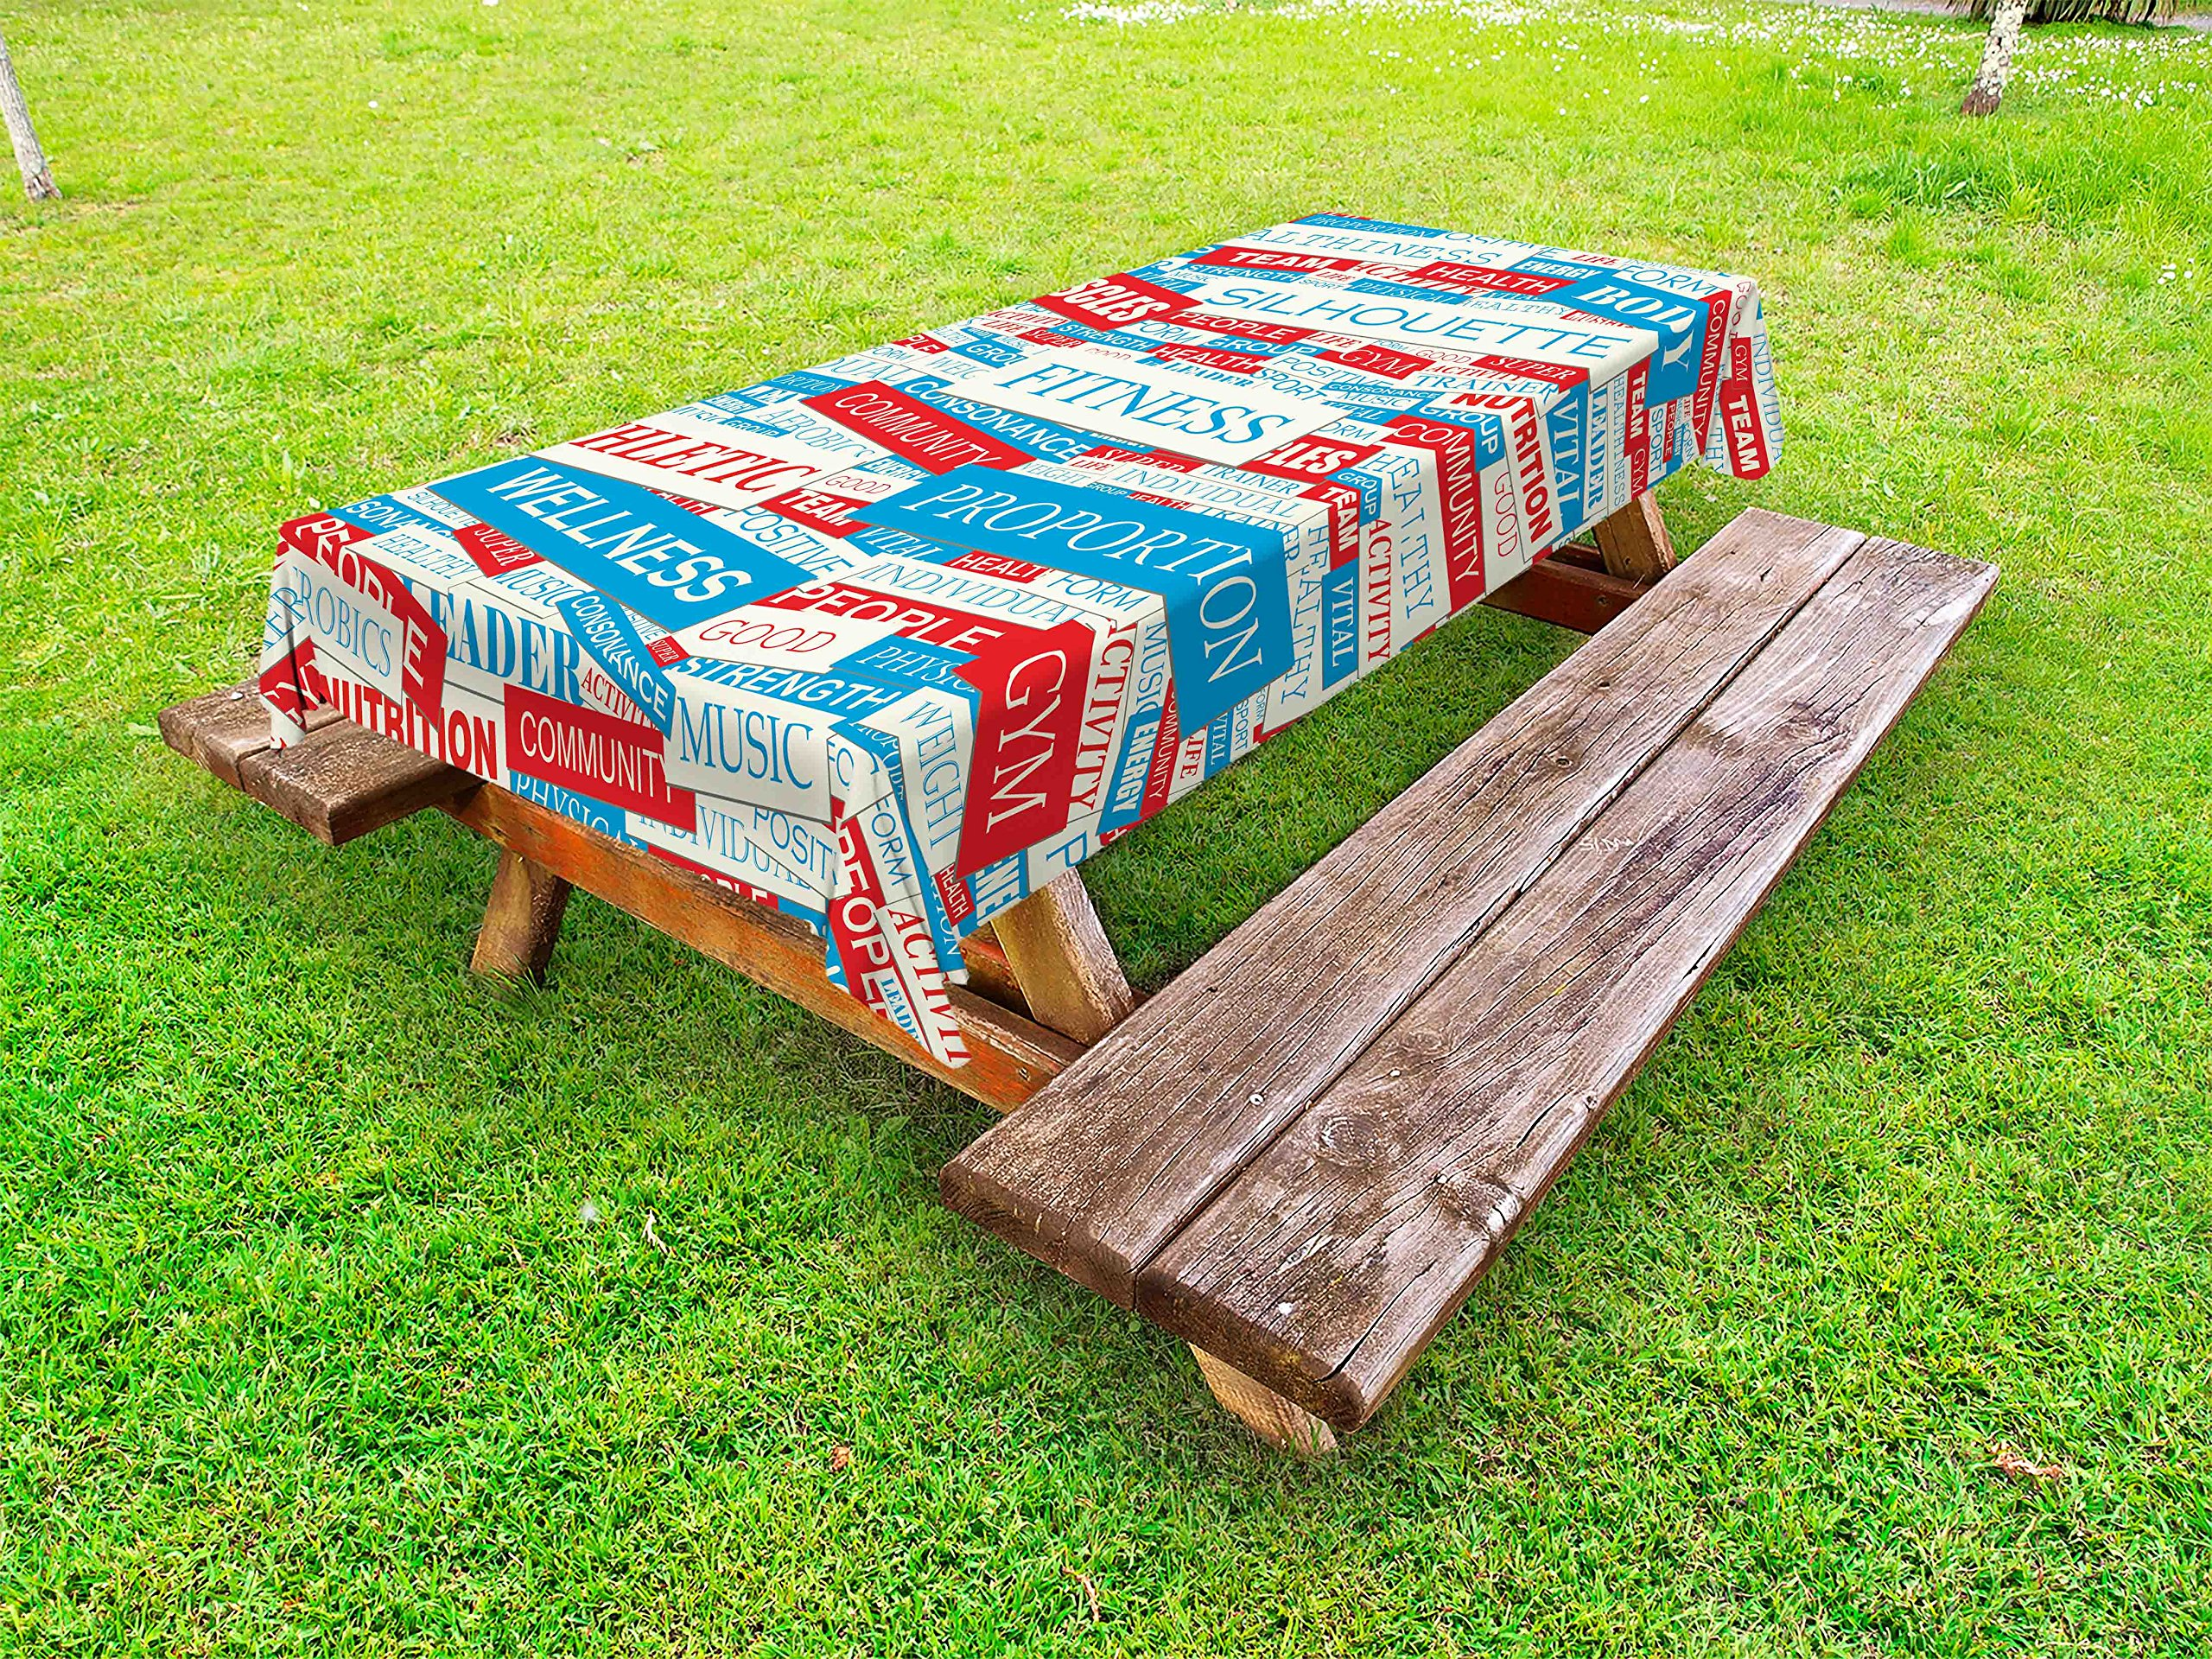 Ambesonne Fitness Outdoor Tablecloth, Collage of Words Physical Activity Healthiness Nutrition Bodycare Theme, Decorative Washable Picnic Table Cloth, 58 X 104 inches, Sky Blue White Red